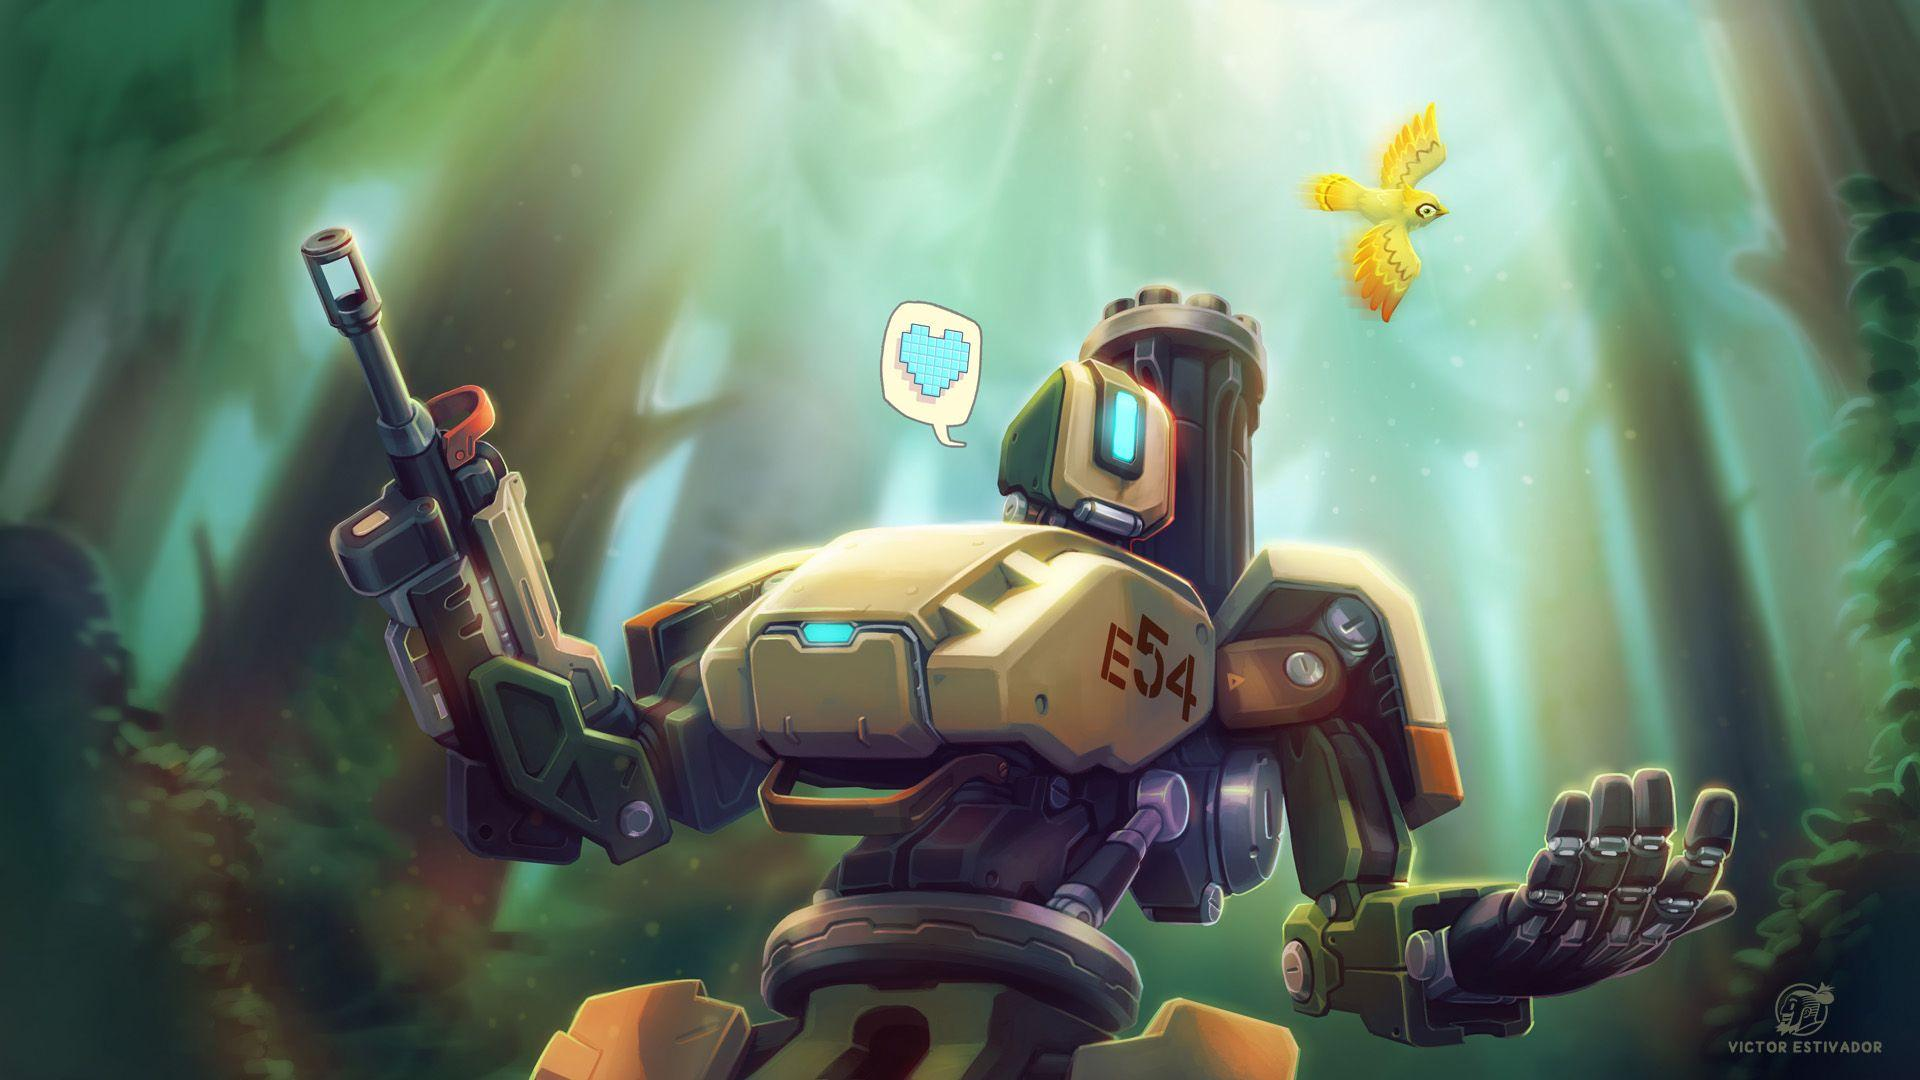 Bastion overwatch wallpapers wallpaper cave - Bastion wallpaper ...